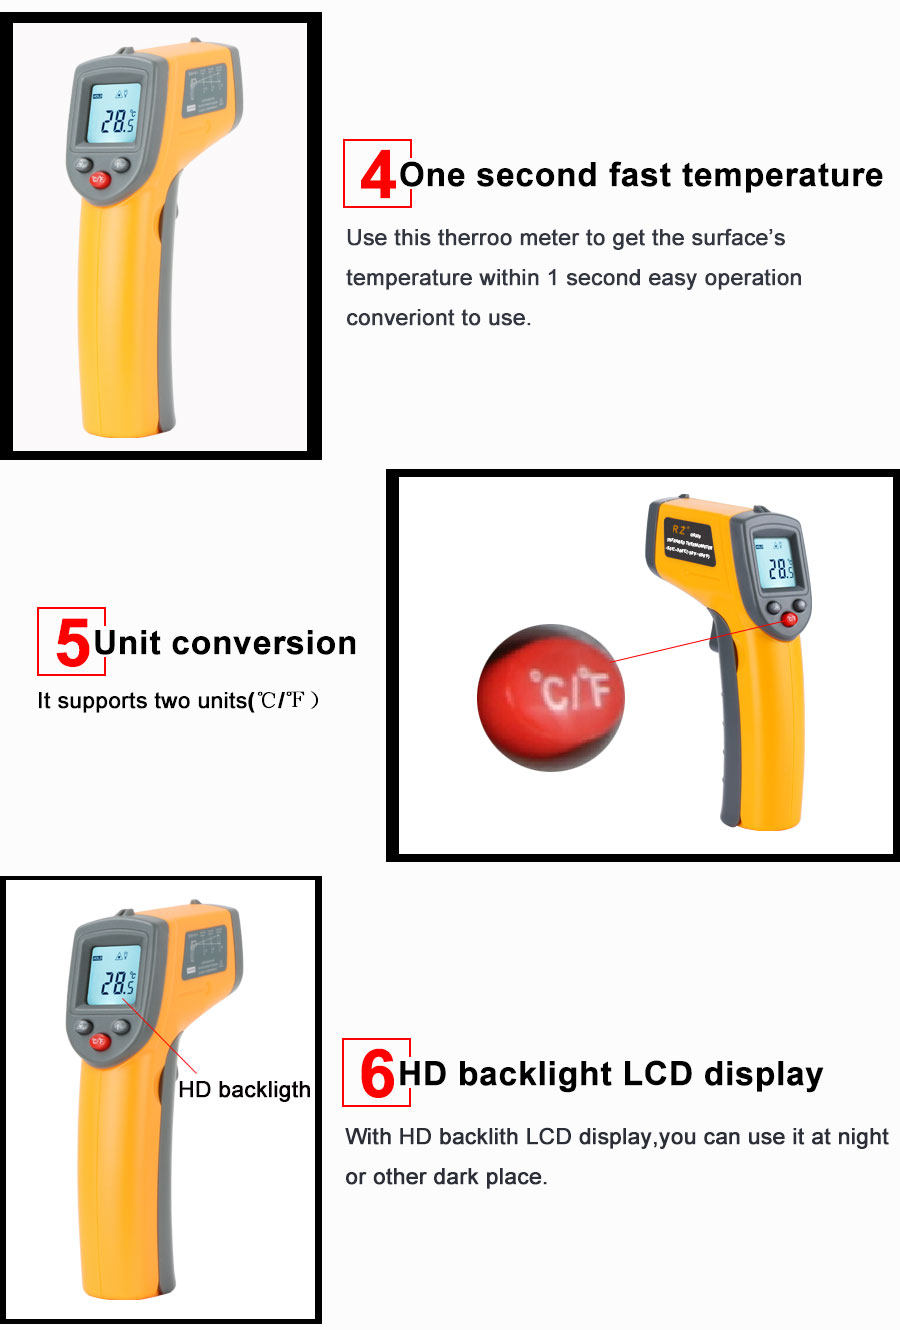 Hdc2793bc75e849e2b790751d606ca517Y RZ IR Infrared Thermometer Thermal Imager Handheld Digital Electronic Outdoor Non-Contact Laser Pyrometer Point Gun Thermometer